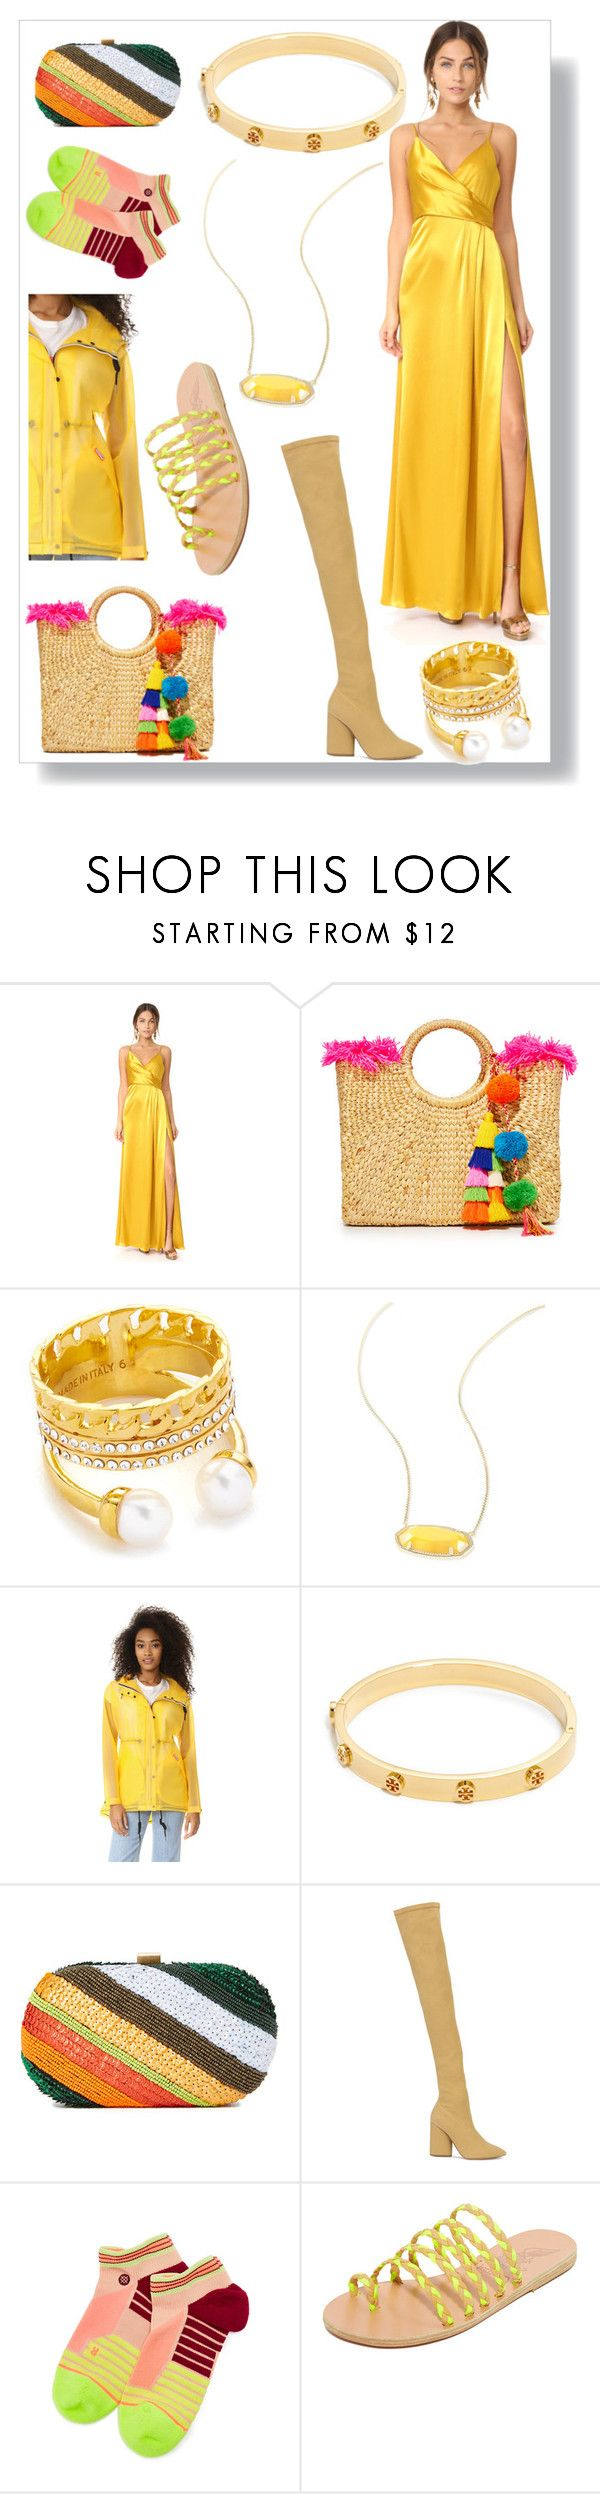 """""""About to change"""" by emmamegan-5678 ❤ liked on Polyvore featuring Jill by Jill Stuart, JADEtribe, Vita Fede, Kendra Scott, Hunter, Tory Burch, Santi, Yeezy by Kanye West, Stance and Ancient Greek Sandals"""